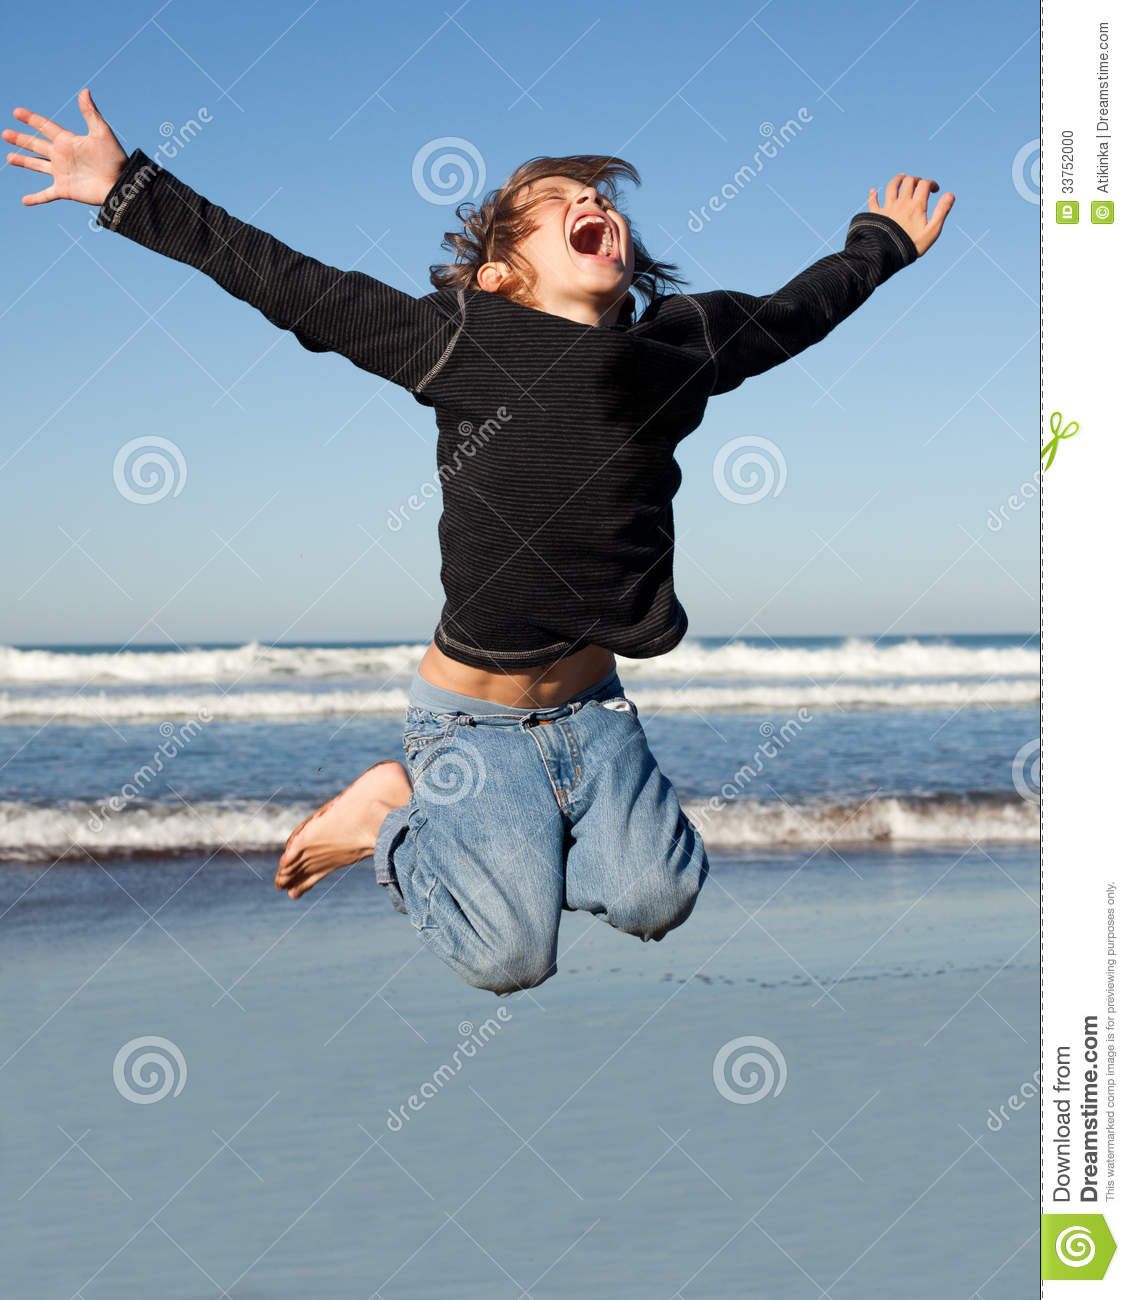 jump for joy stock photo image of summer kids outdoor